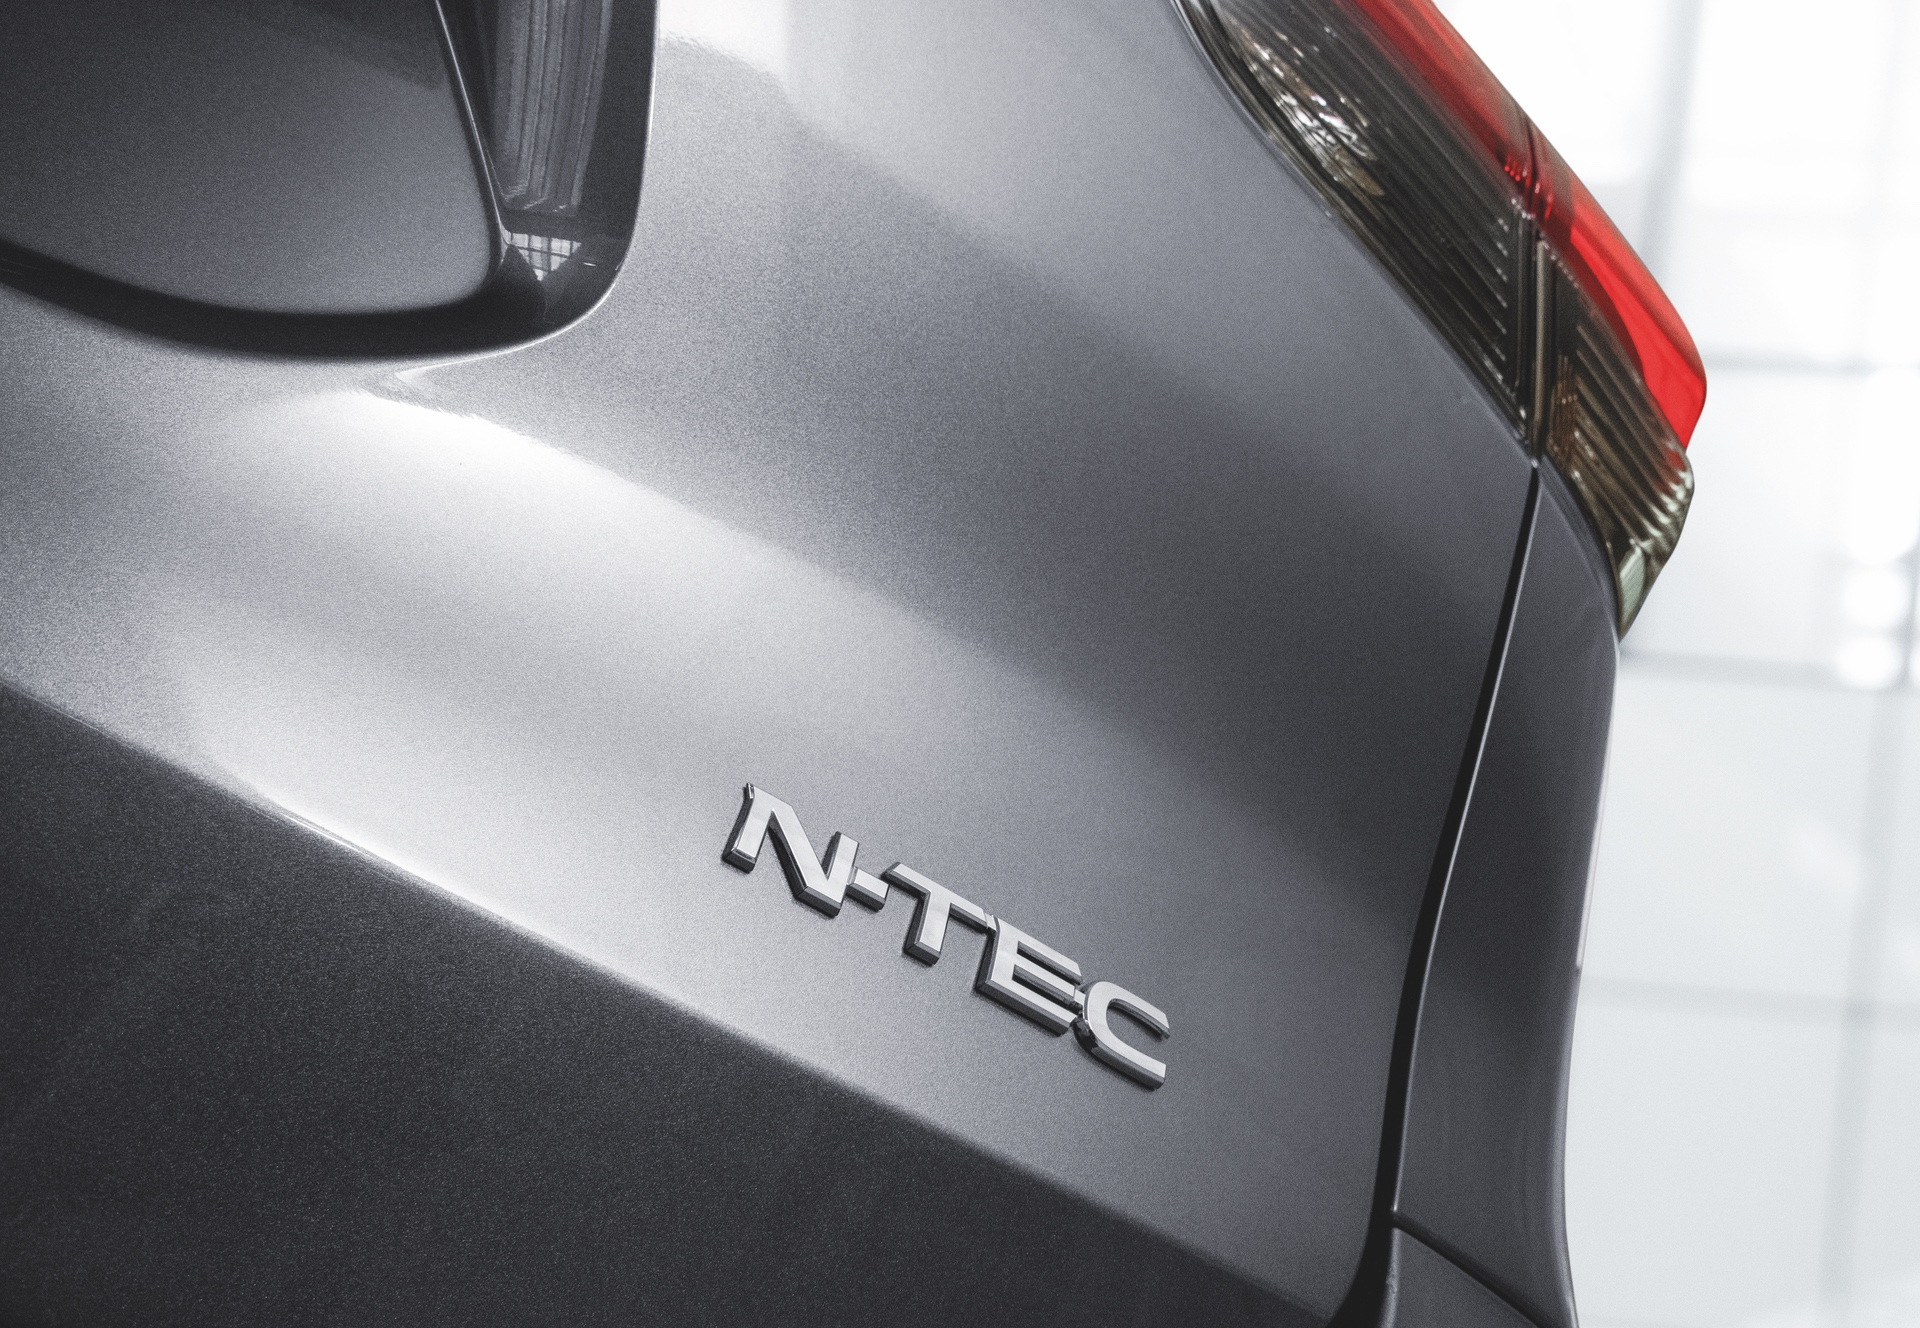 Jan.-7-10am-CET-X-TRAIL-N-TEC-Edition-badge